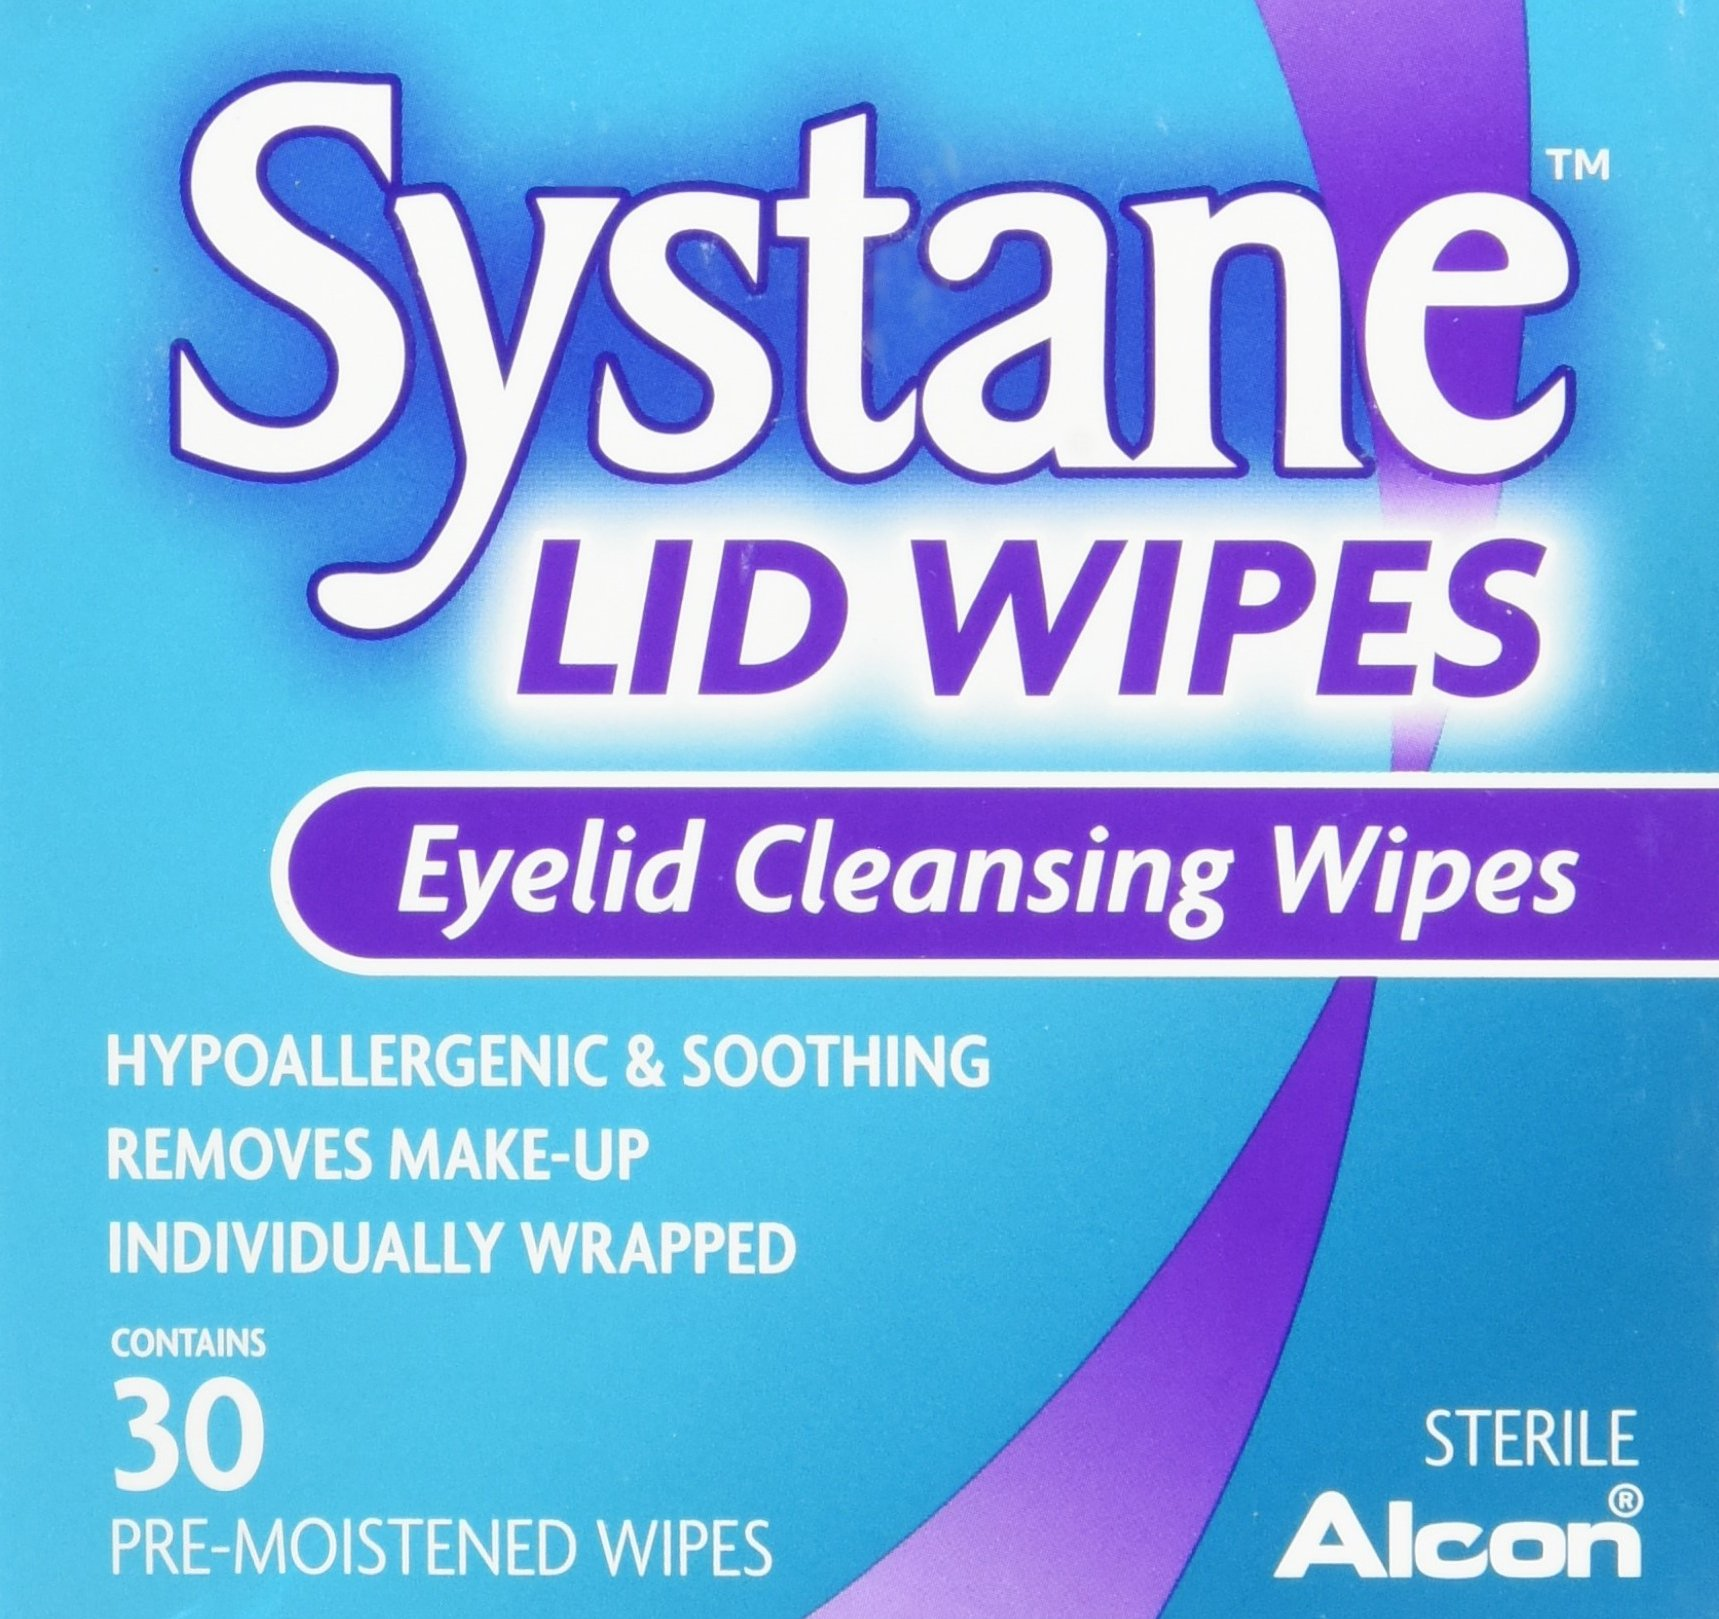 Systane Eyelid Cleansing Wipes, 30 Count (4 Pack)